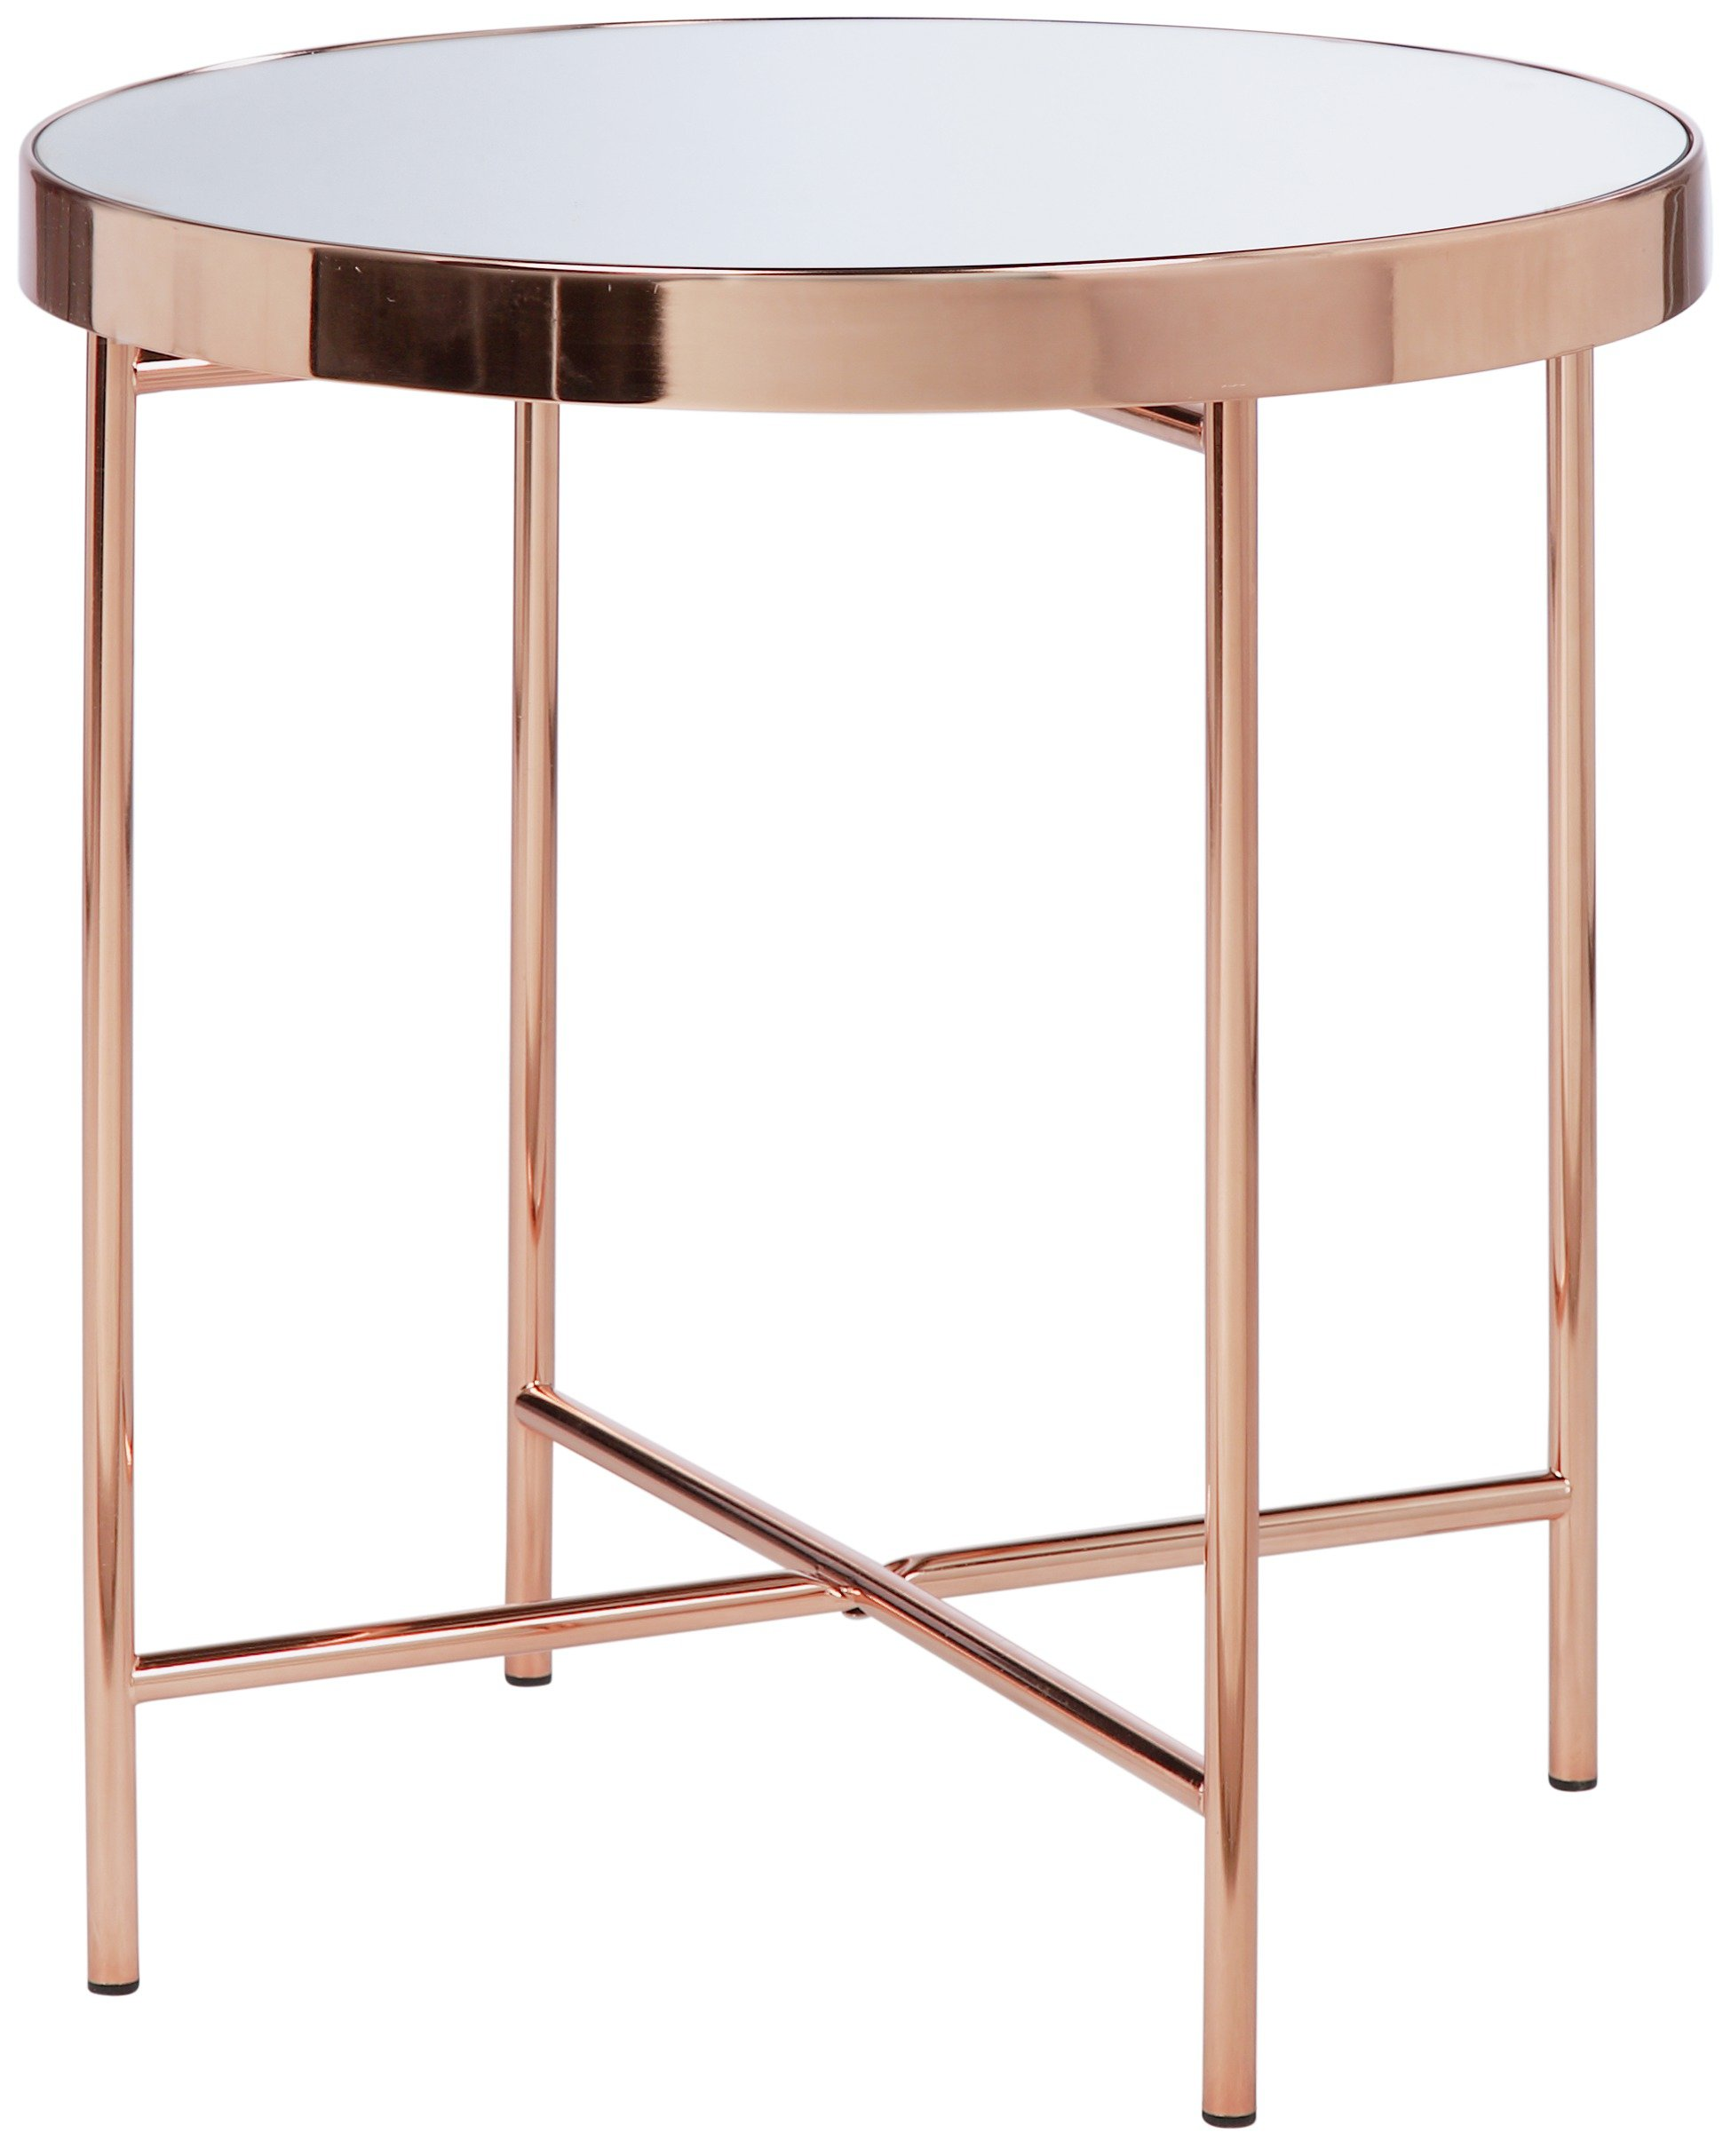 Argos Home Round Glass Top Side Table Copper Plated